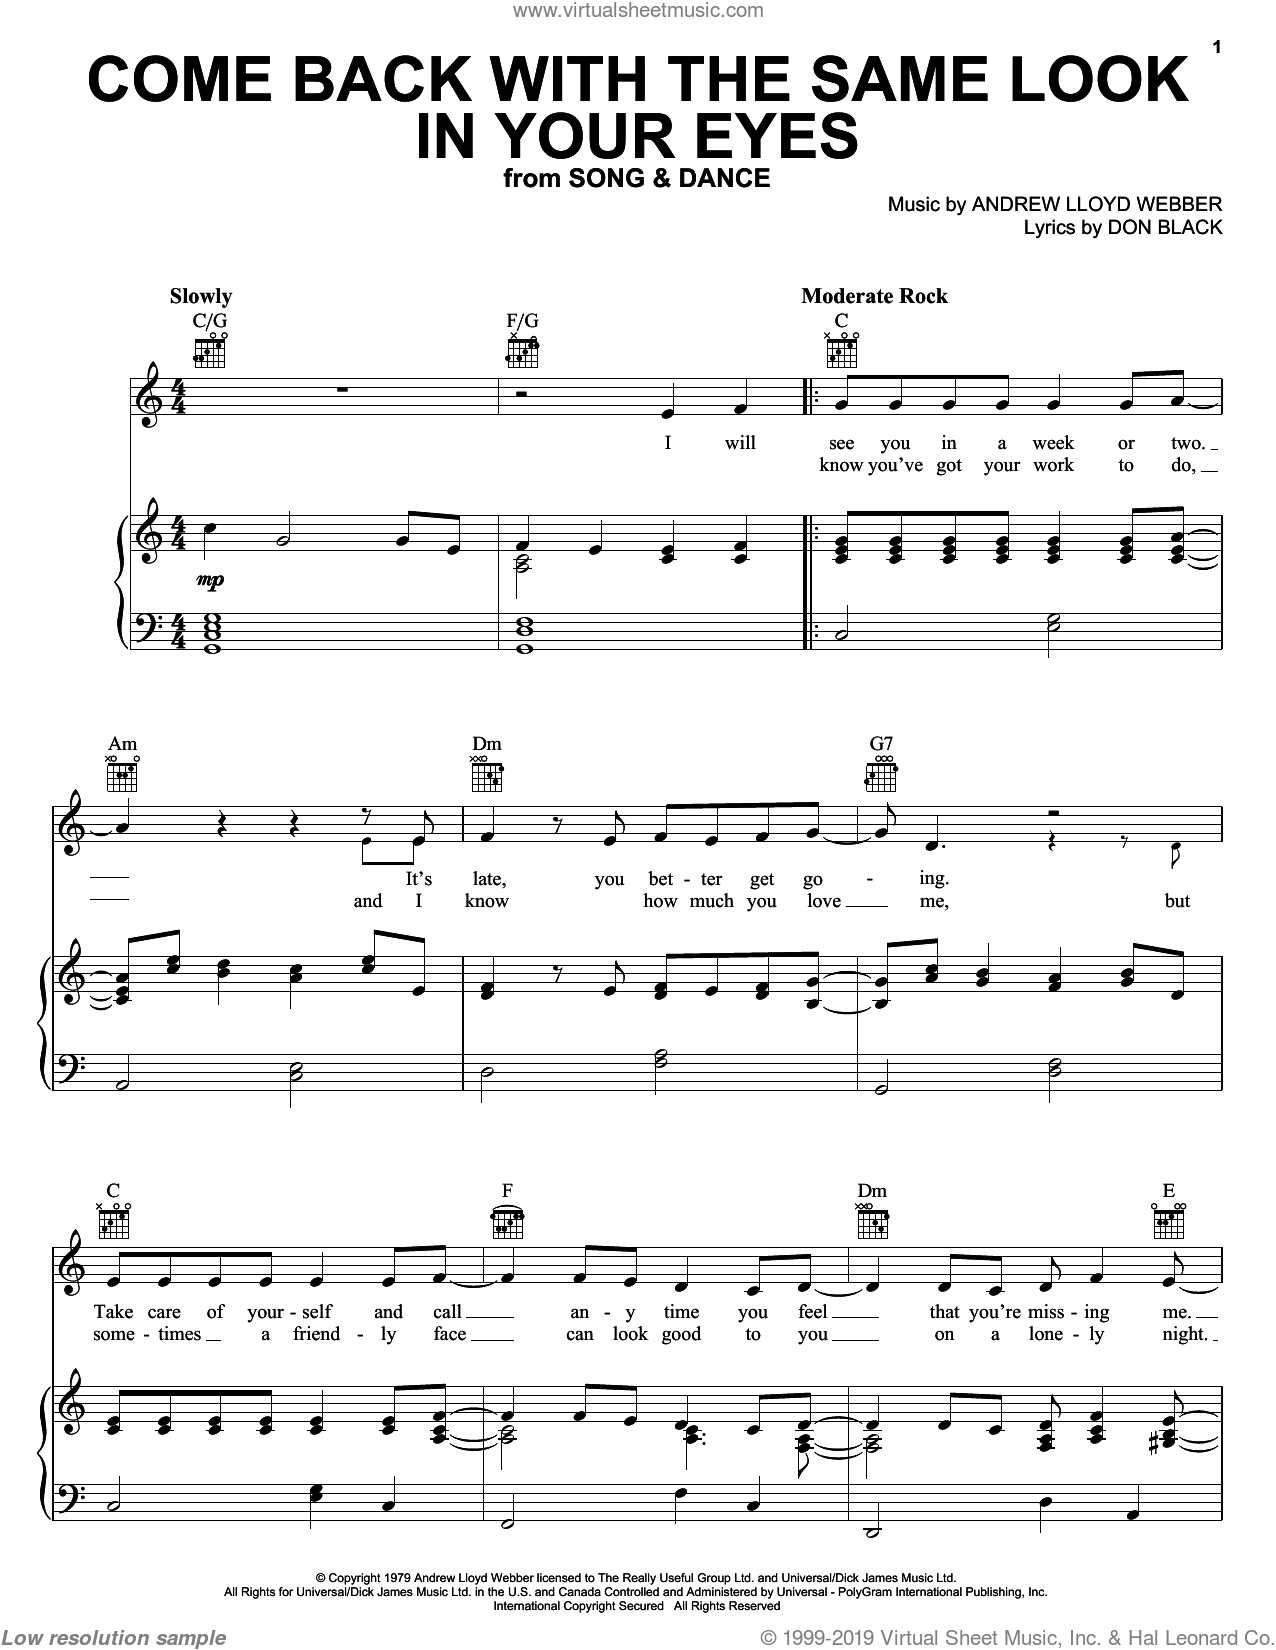 Come Back With The Same Look In Your Eyes sheet music for voice, piano or guitar by Don Black, Bernadette Peters and Andrew Lloyd Webber. Score Image Preview.